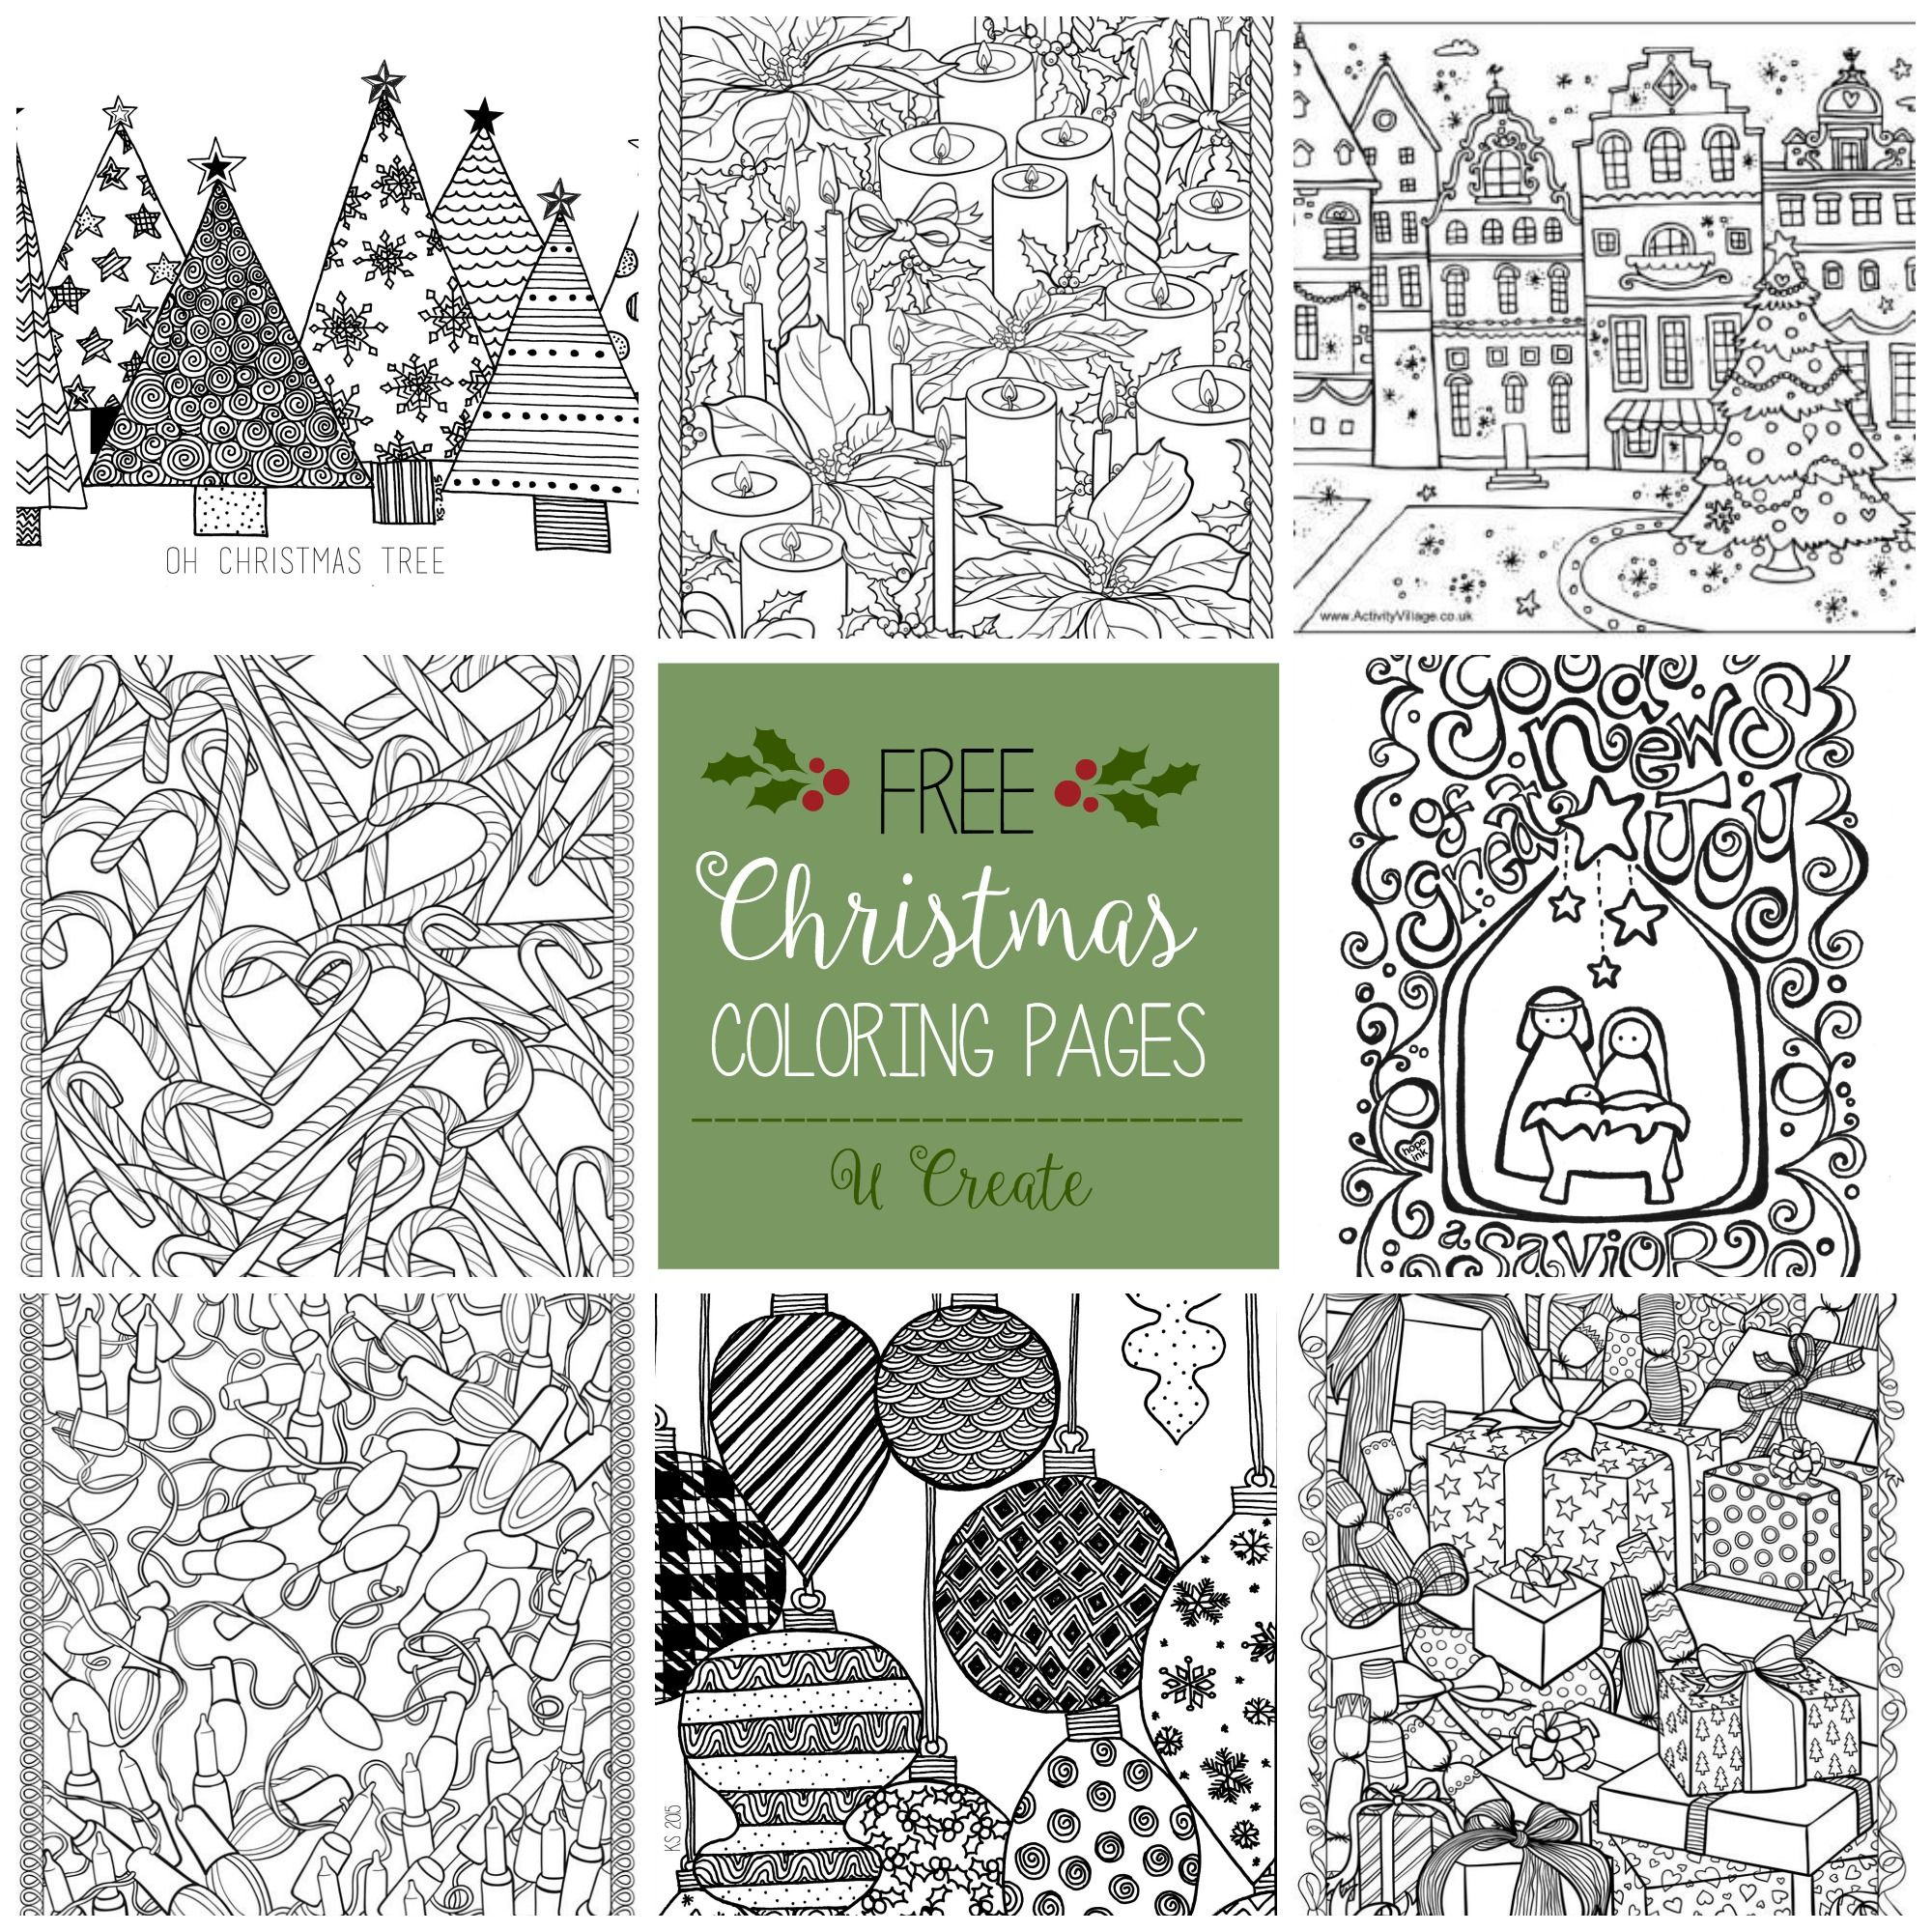 merry christmas coloring banner - Merry Christmas Coloring Pictures